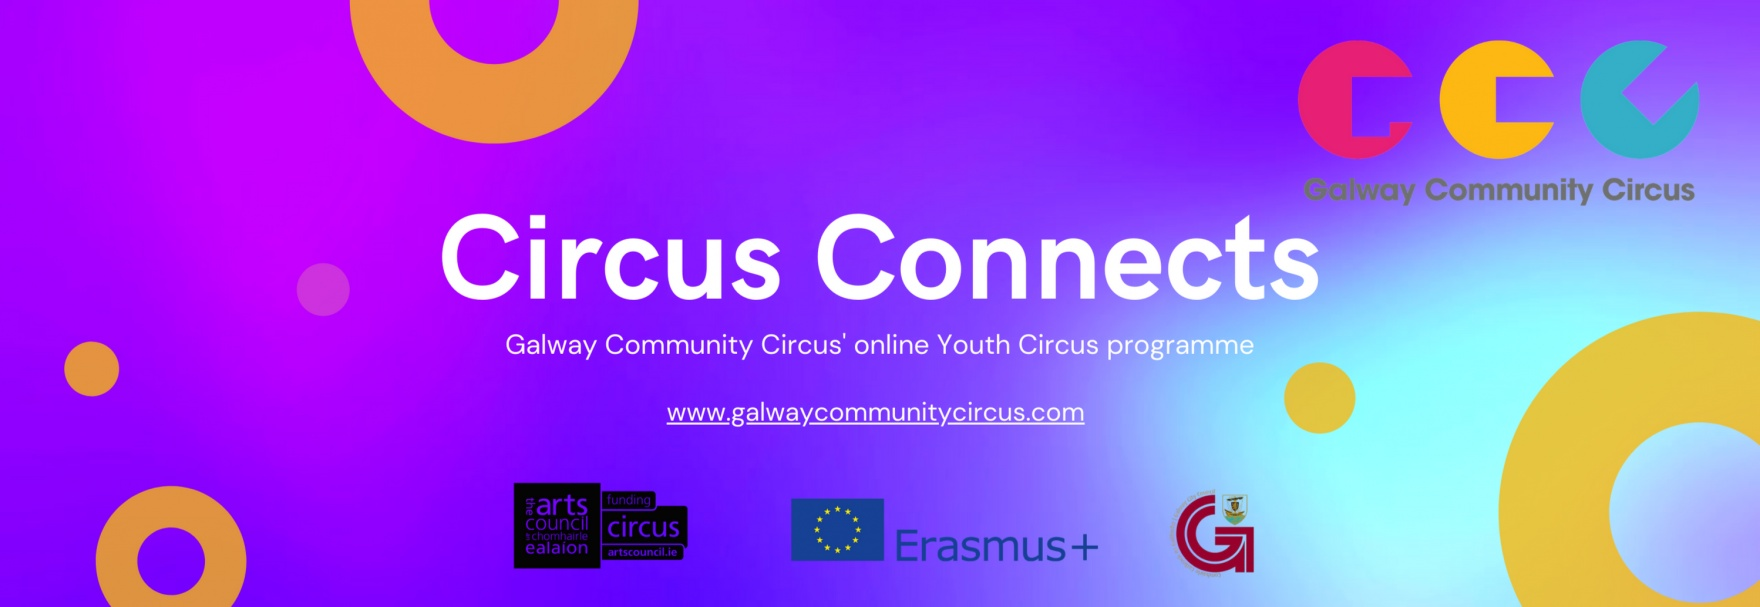 Circus Connects EMAIL BANNER